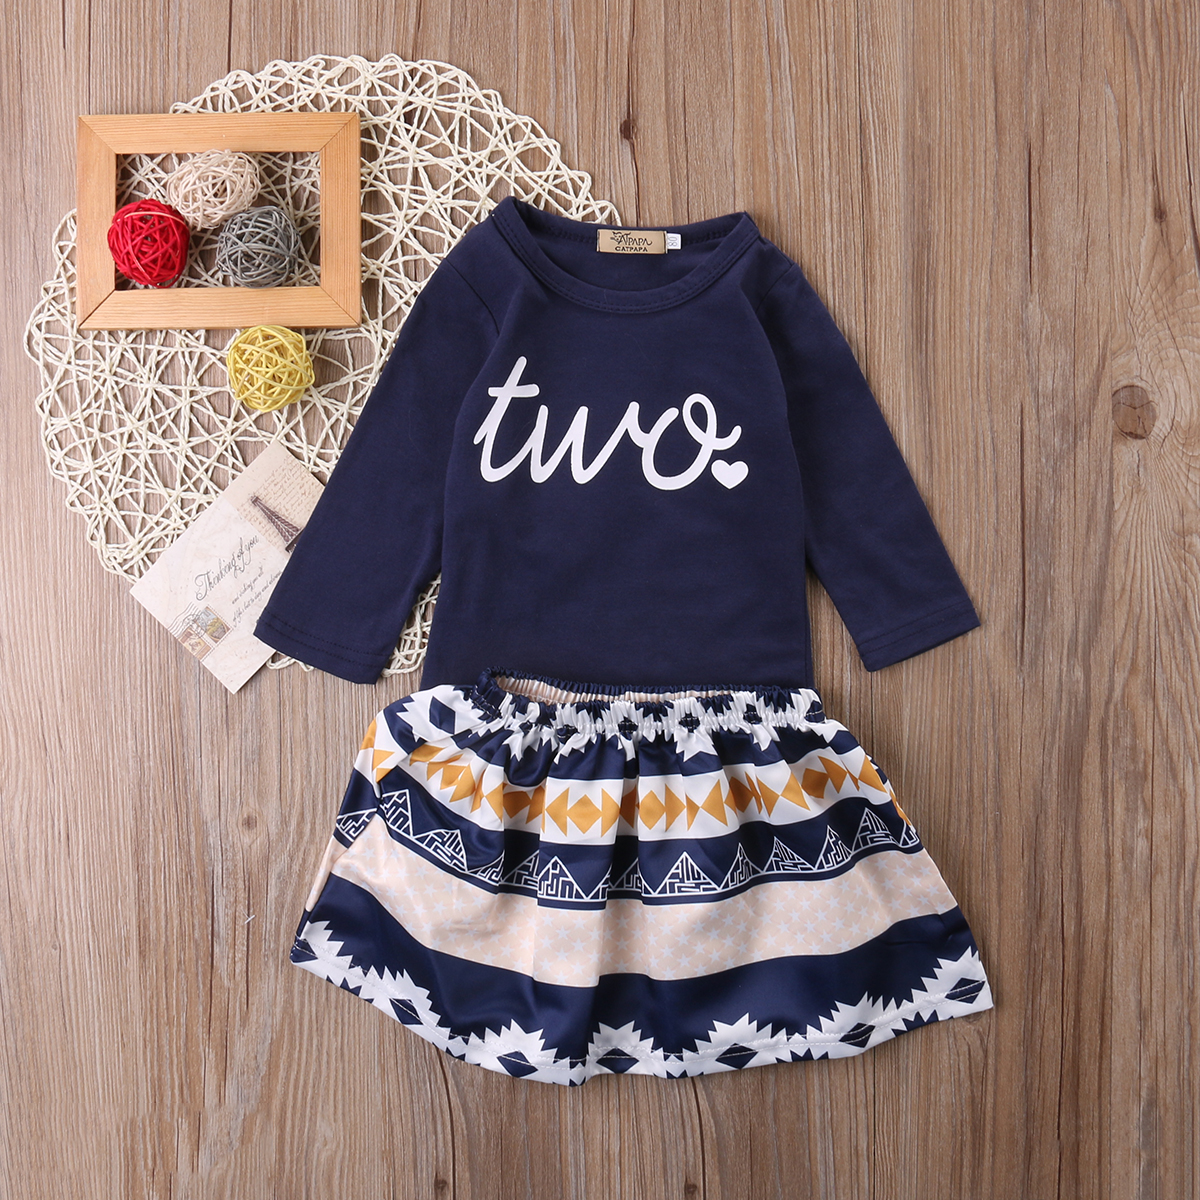 Cute Girls Clothing Set Toddler Kids Baby Girls Outfits Clothes Long Sleeve T-shirt Tops Skirt Dress Elastic Tutu Skirt